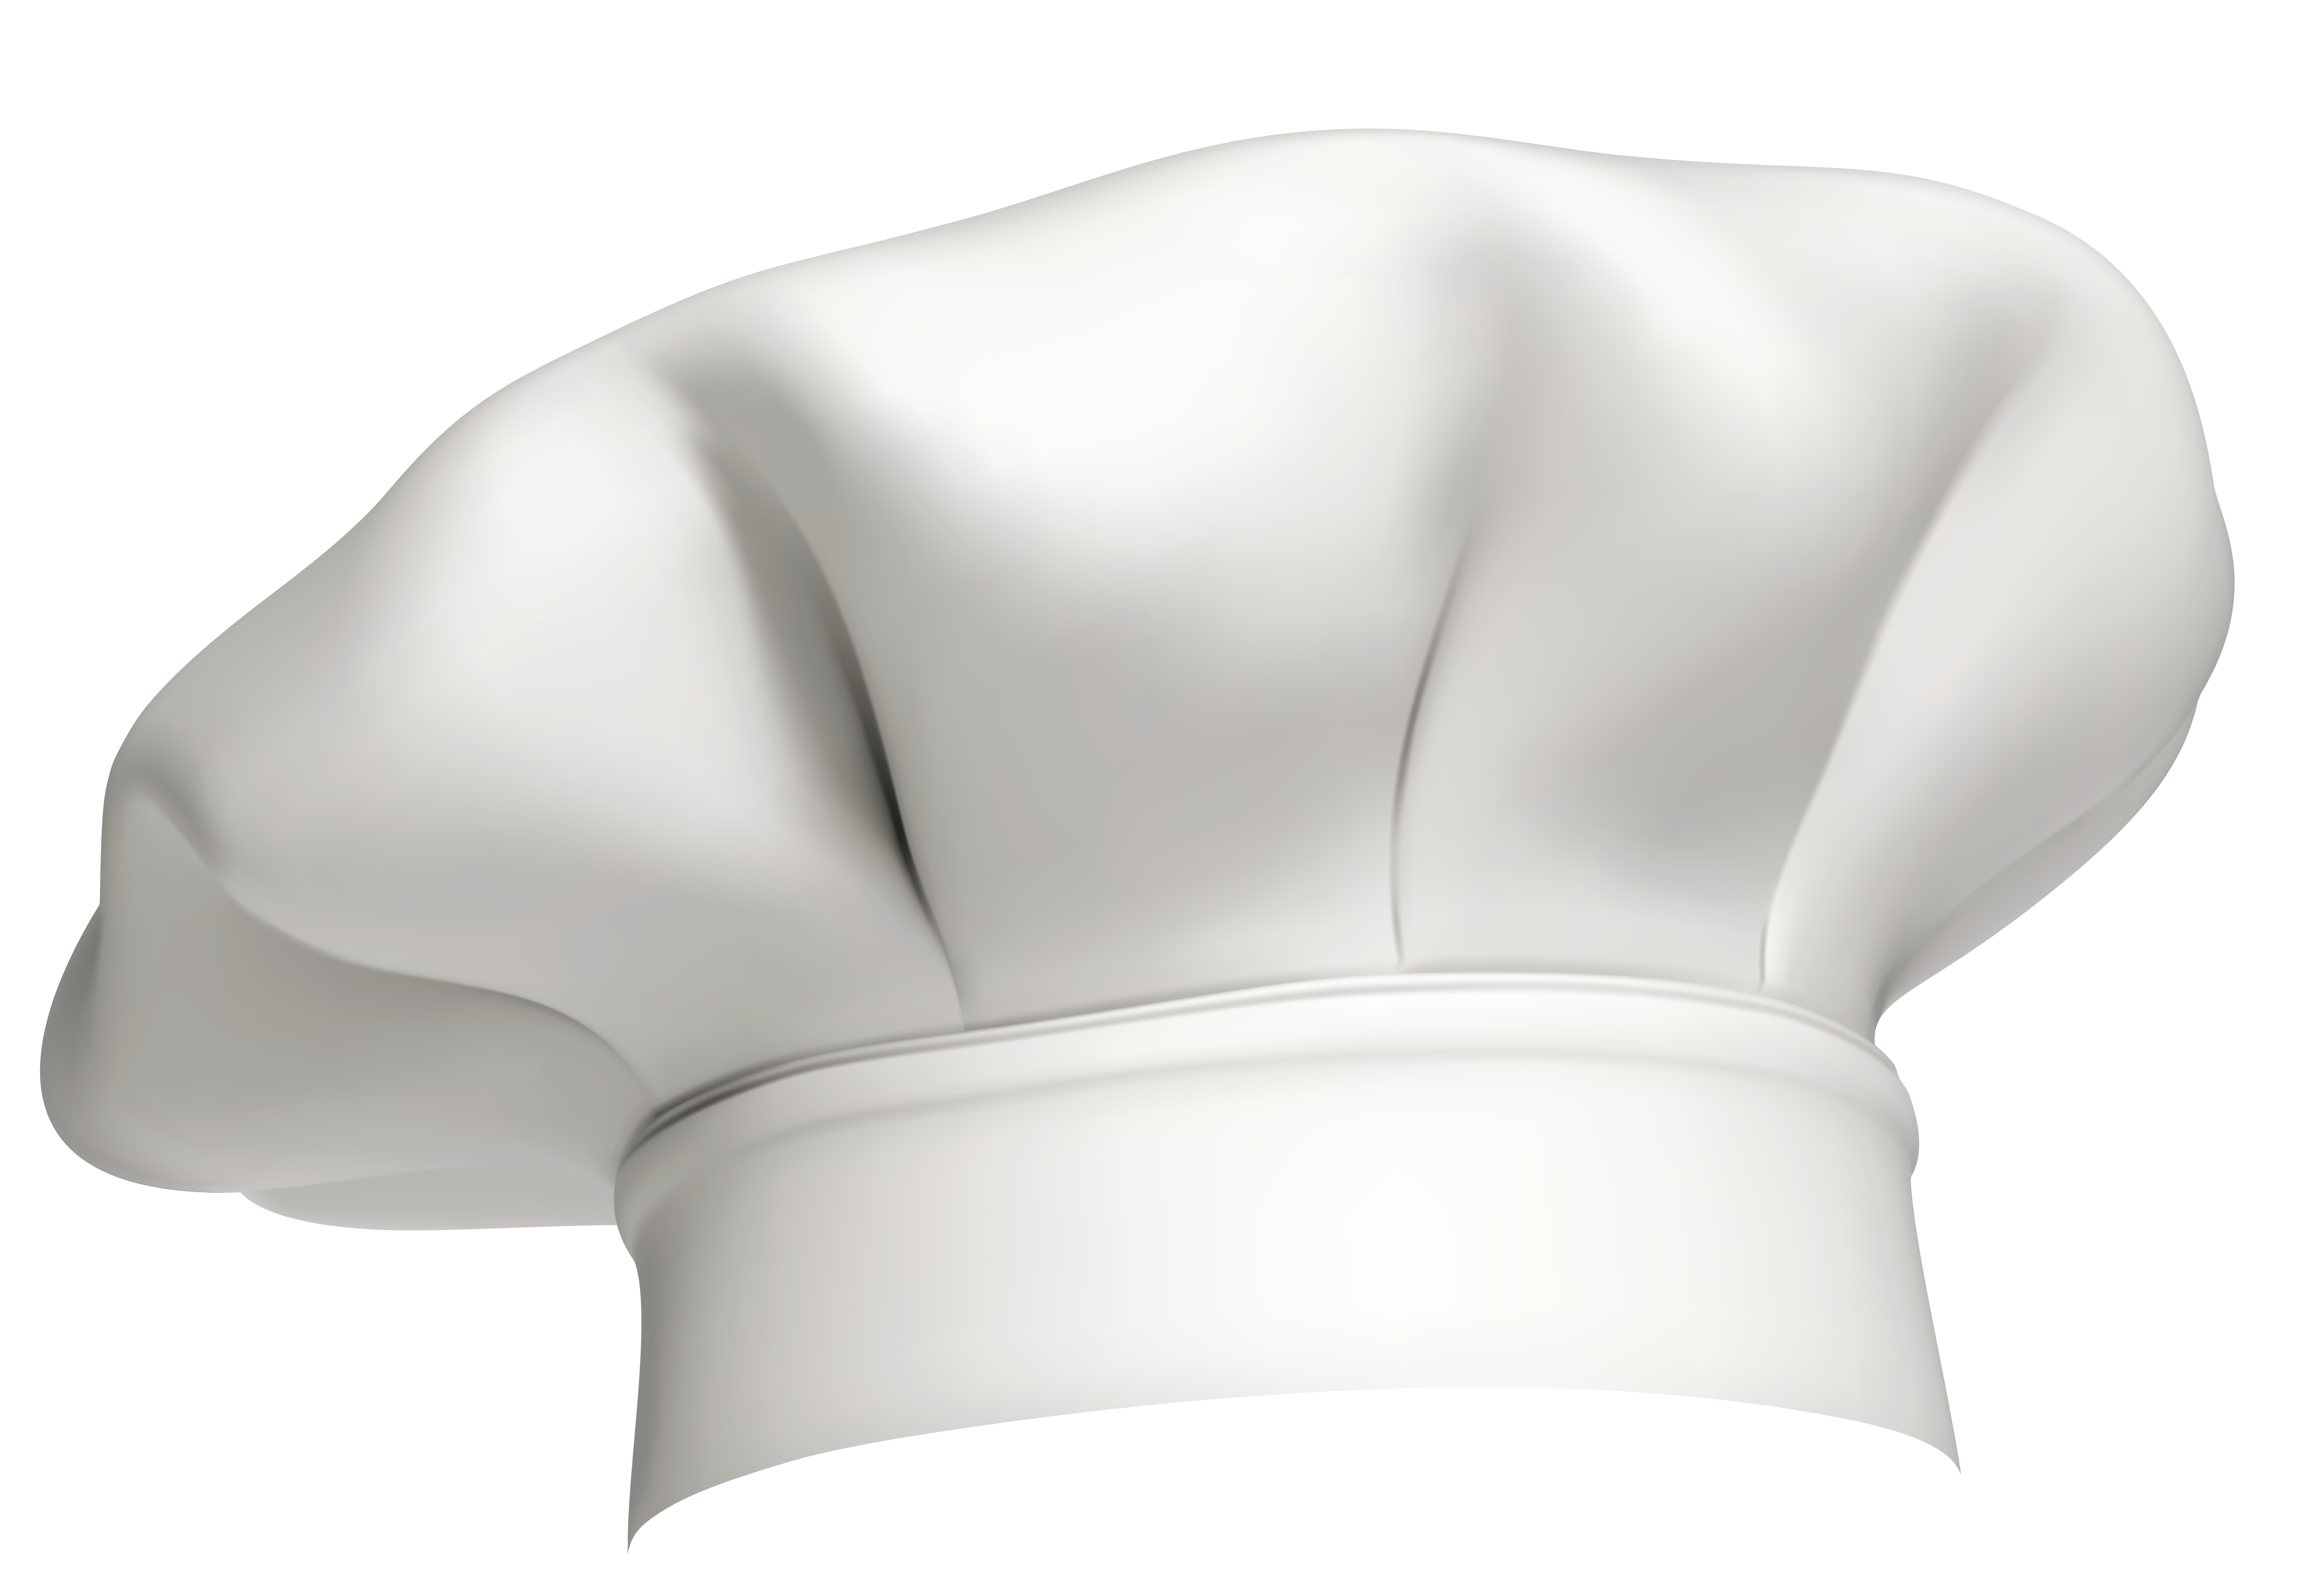 Pin by lj on. Jacket clipart chef coat